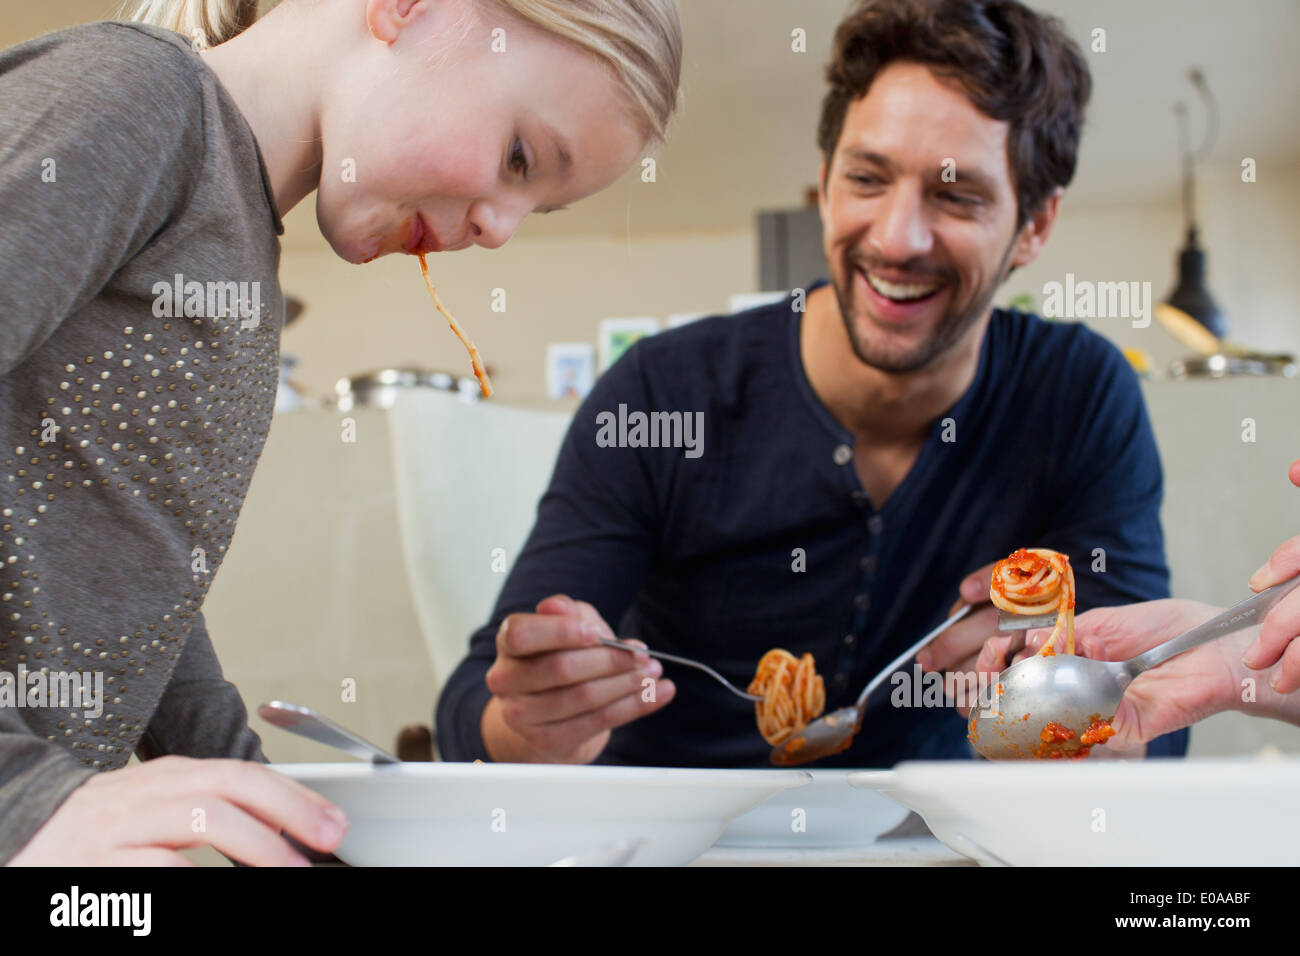 Mid adult man and family eating a spaghetti meal - Stock Image